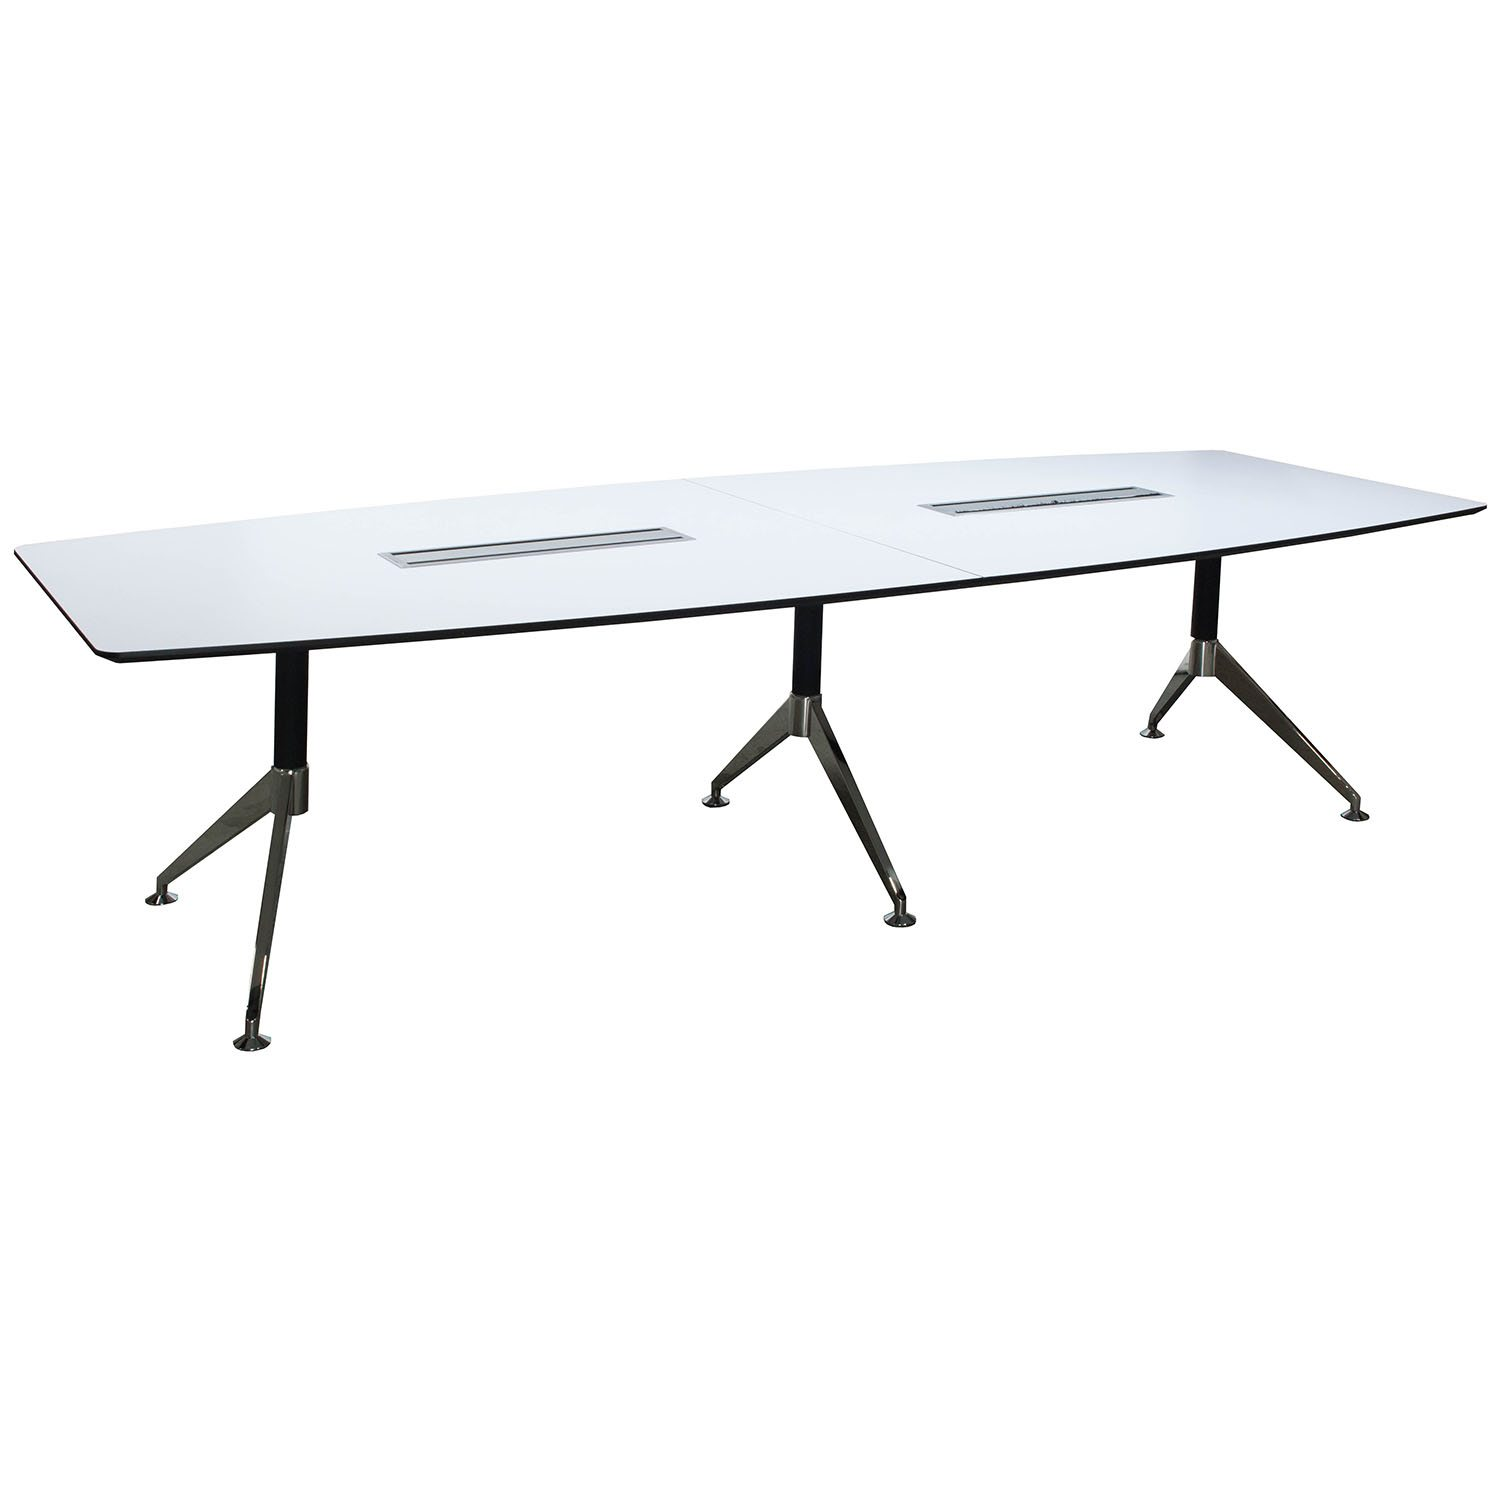 Morgan 10 Foot Melamine Boat Shaped Conference Table